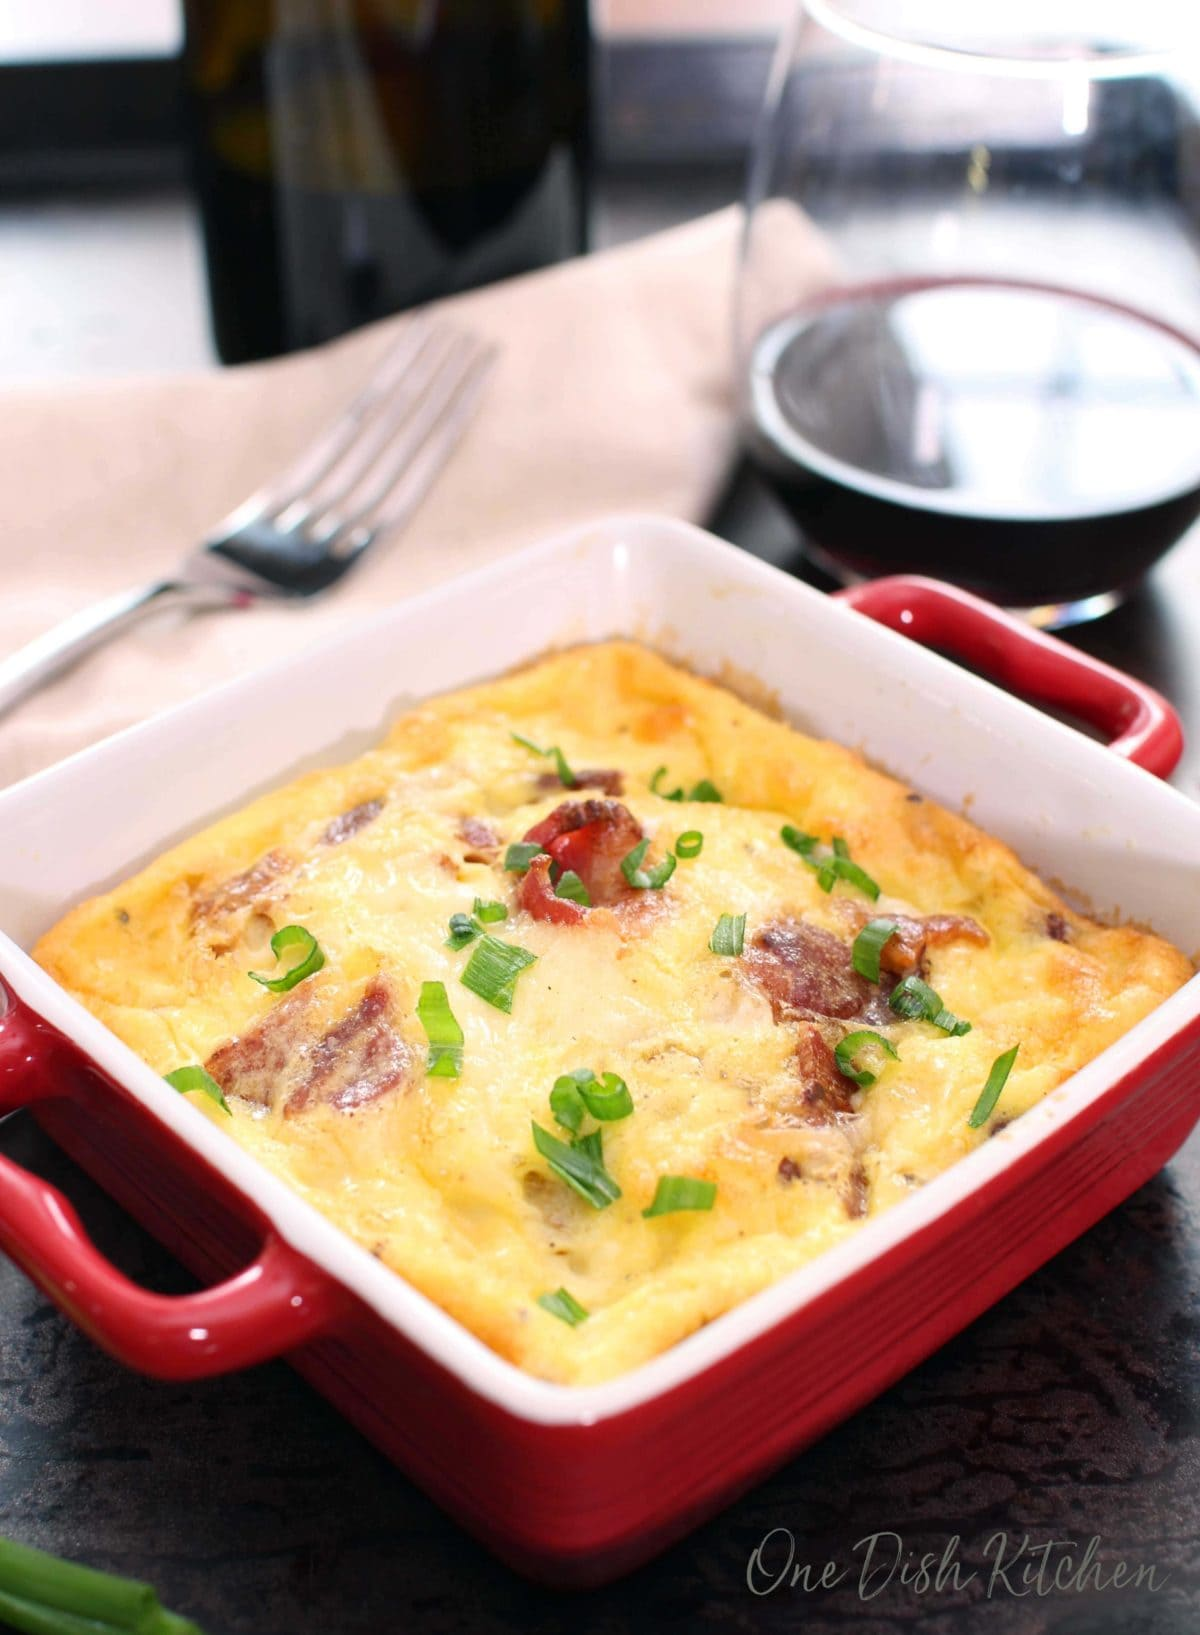 crustless quiche lorraine baked in a small baking dish on a tray with a glass of red wine | one dish kitchen